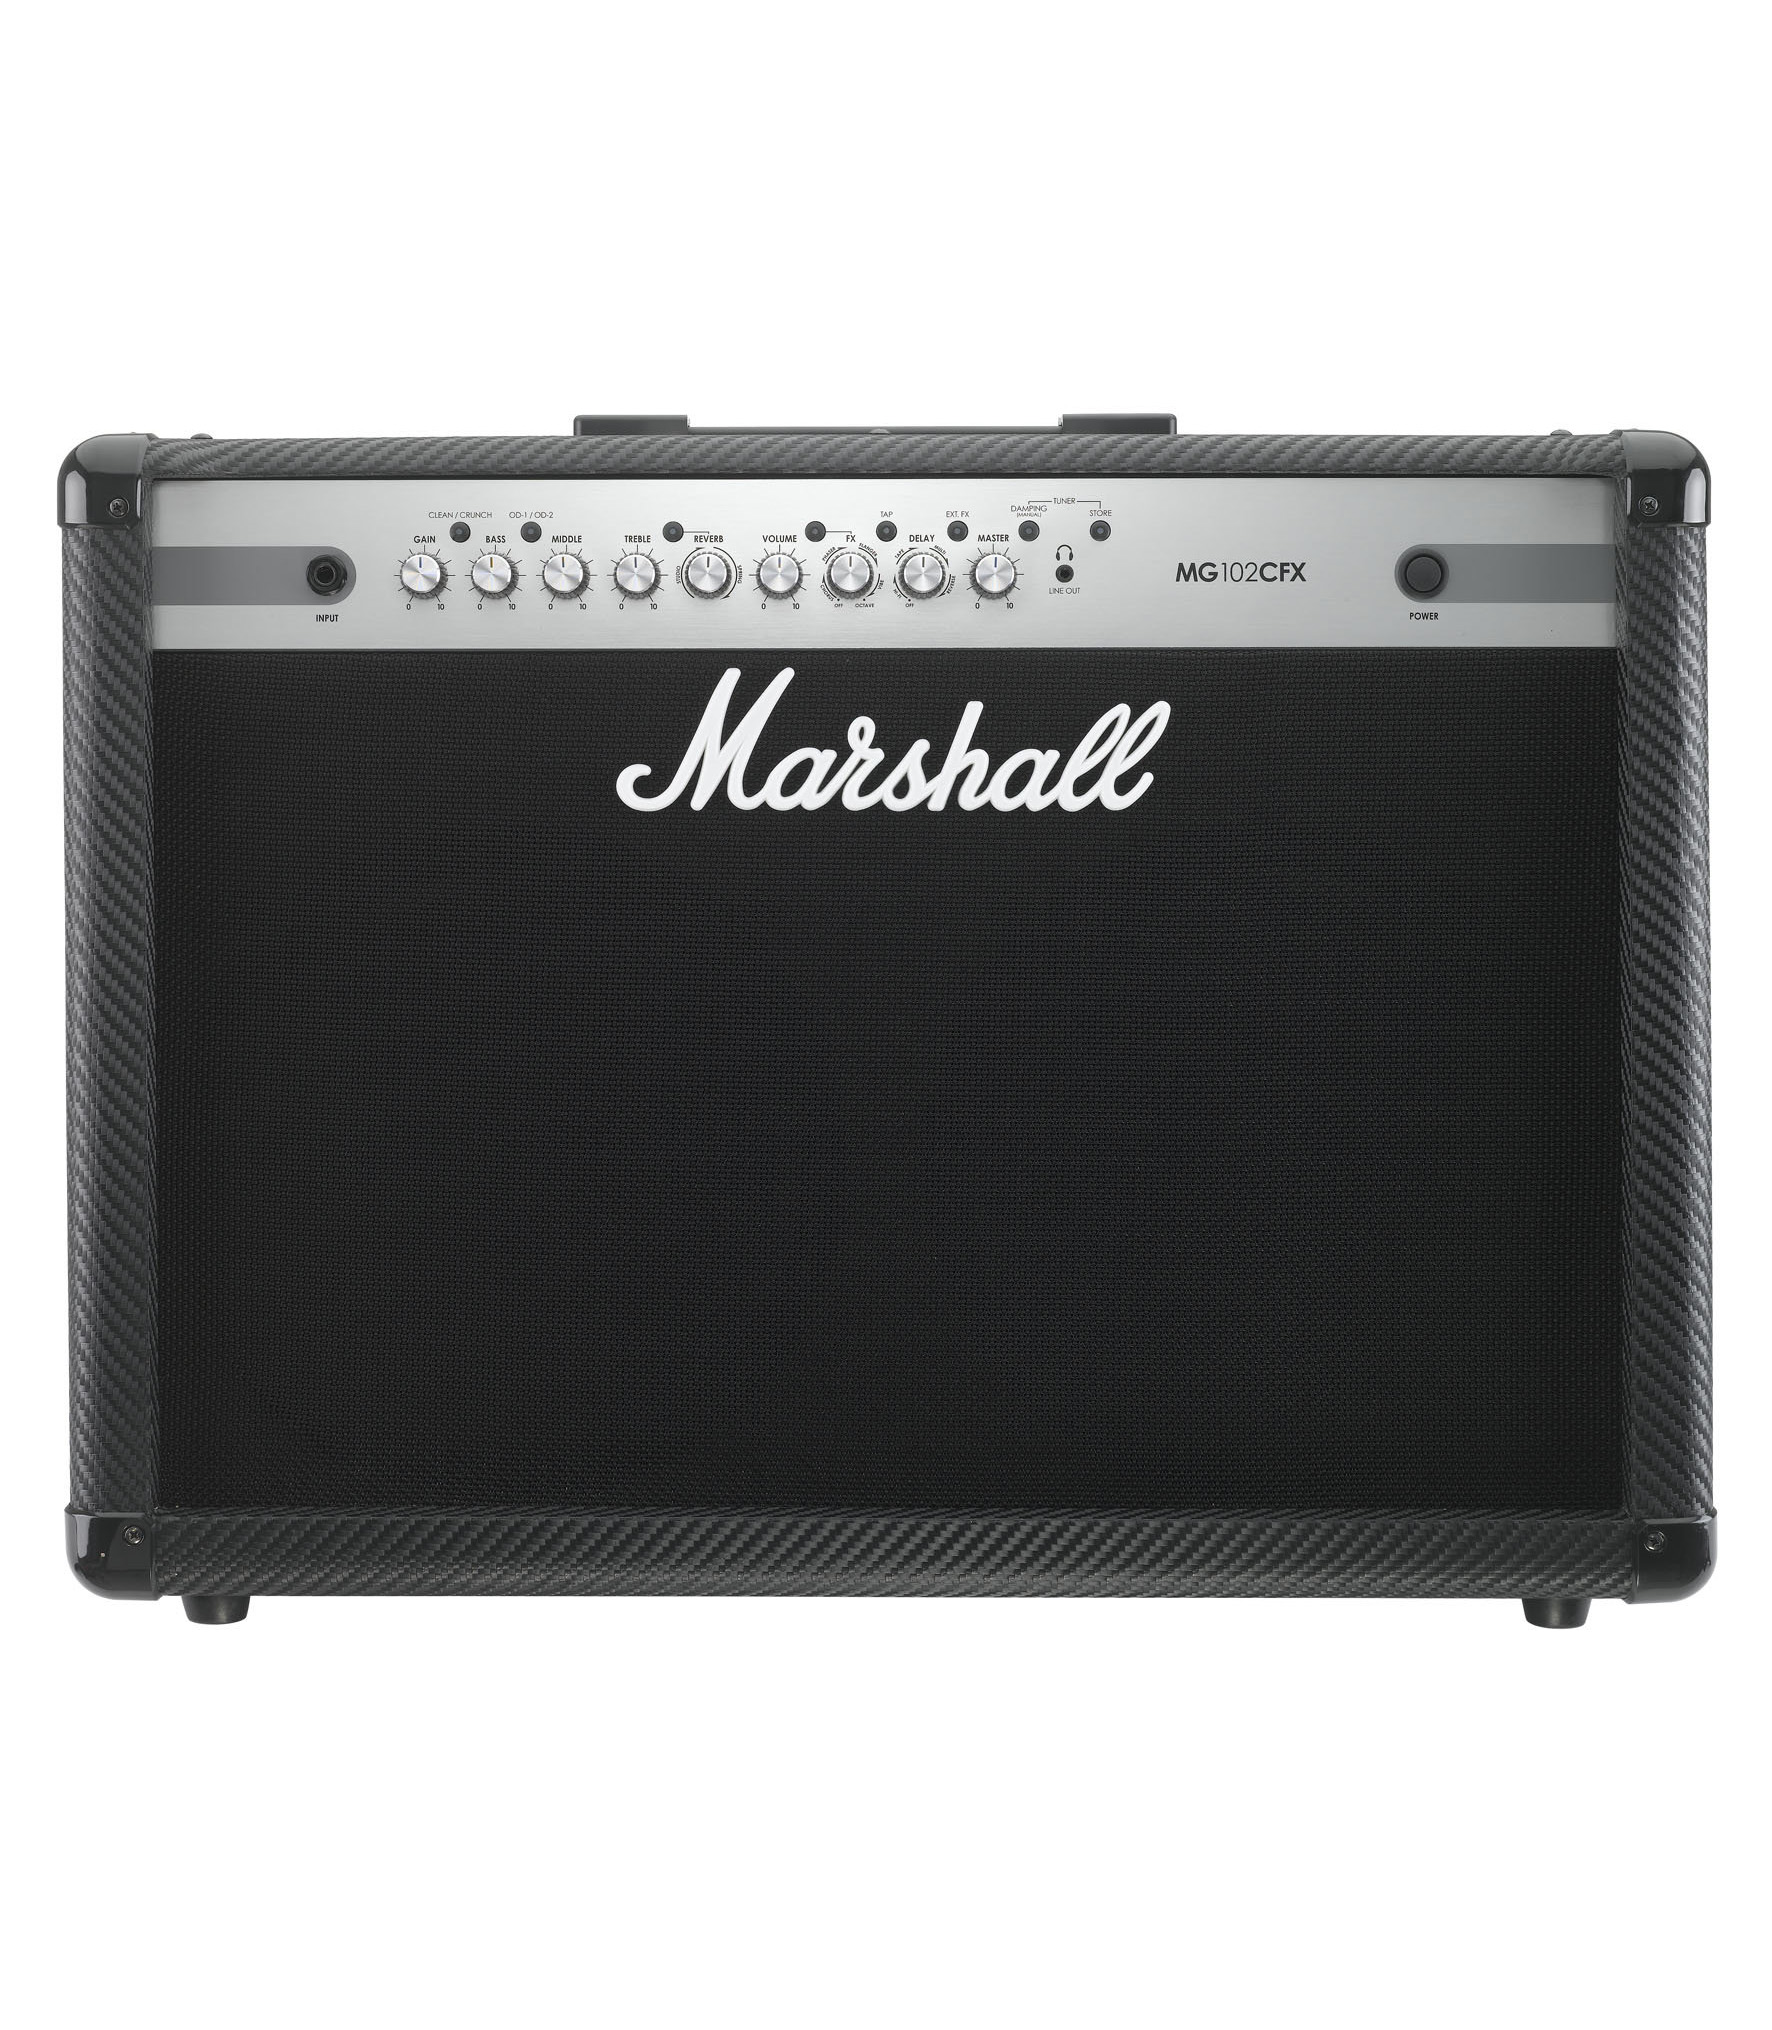 buy marshall mg102cfx solid state guitar amp 4 channel